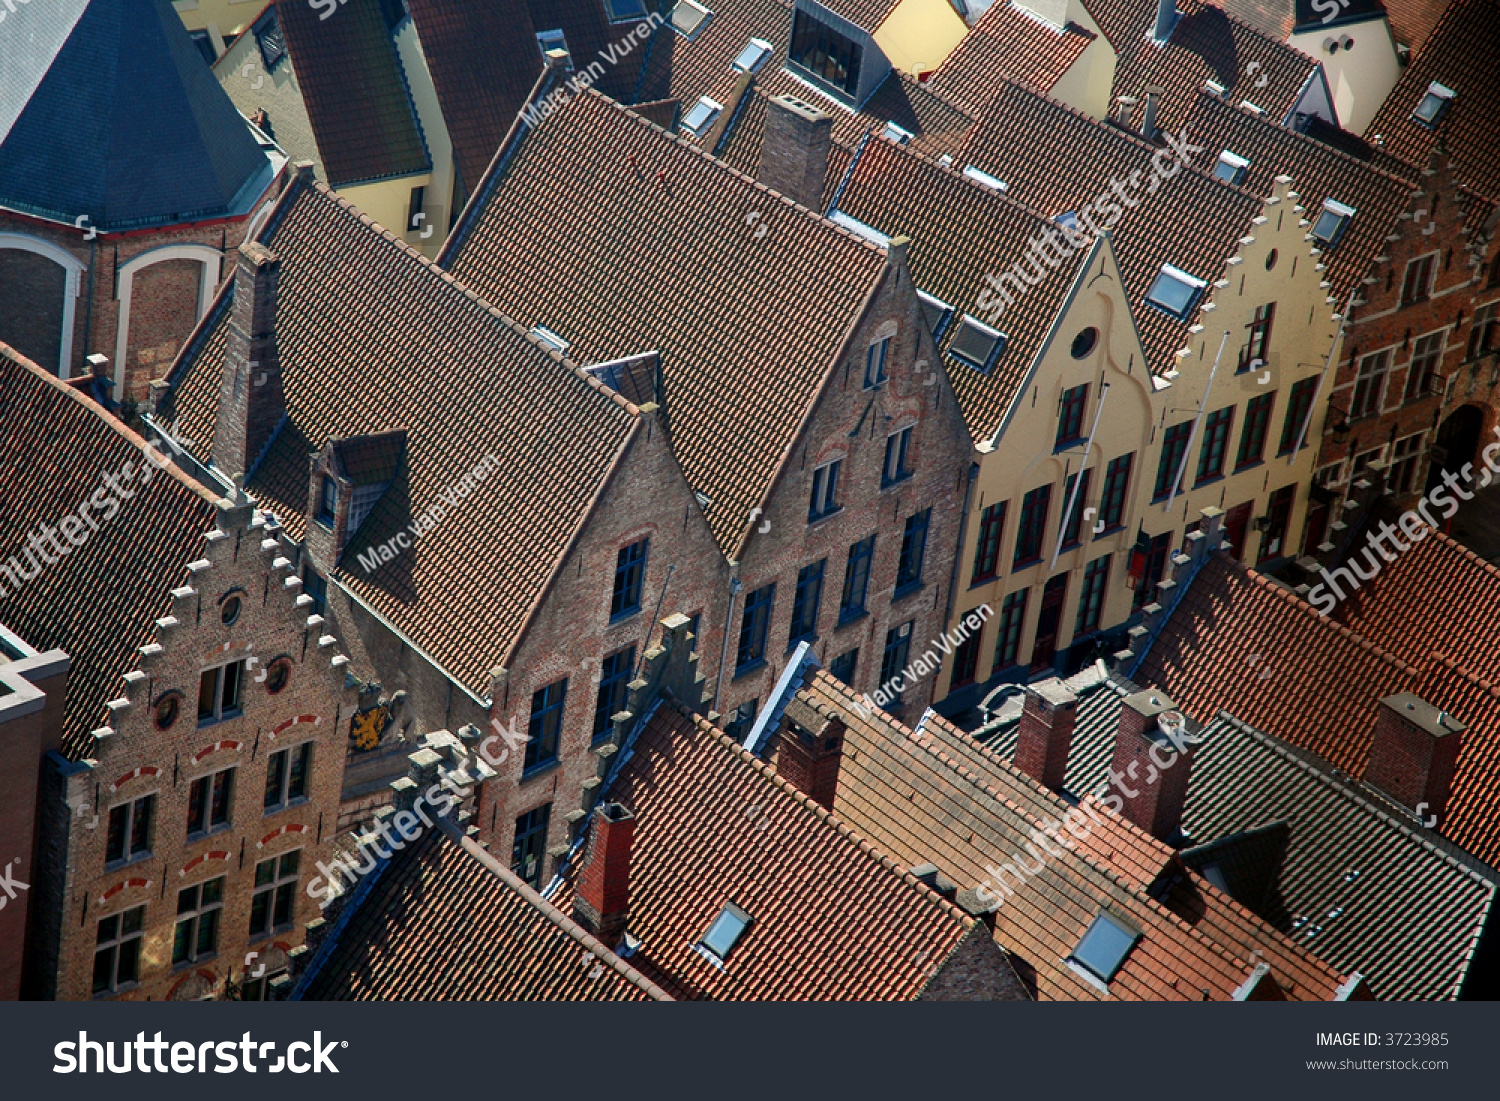 Old traditional houses in brugge belgium stock photo for Old traditional houses